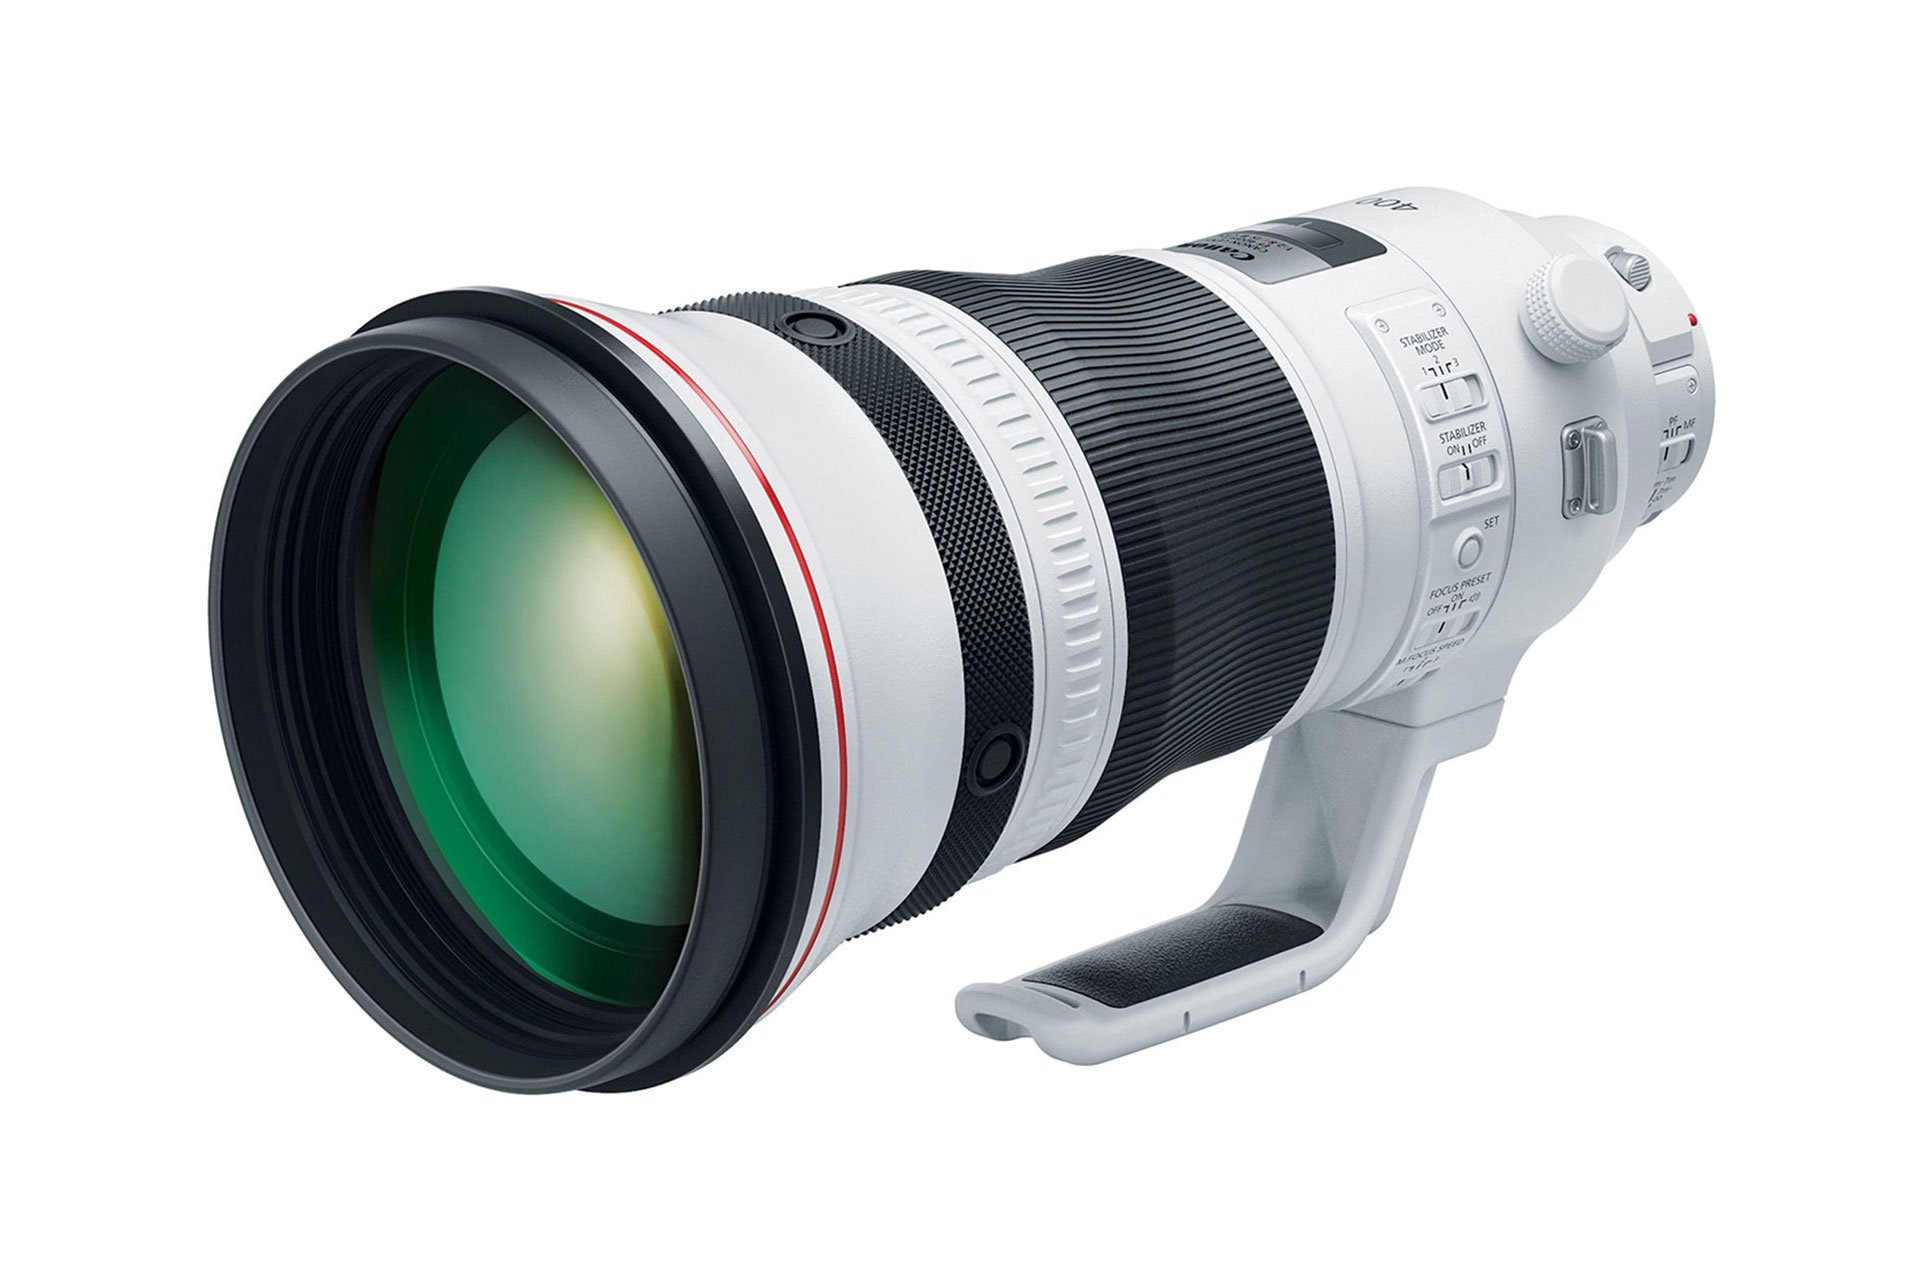 Canon EF 400mm F2.8L IS III USM